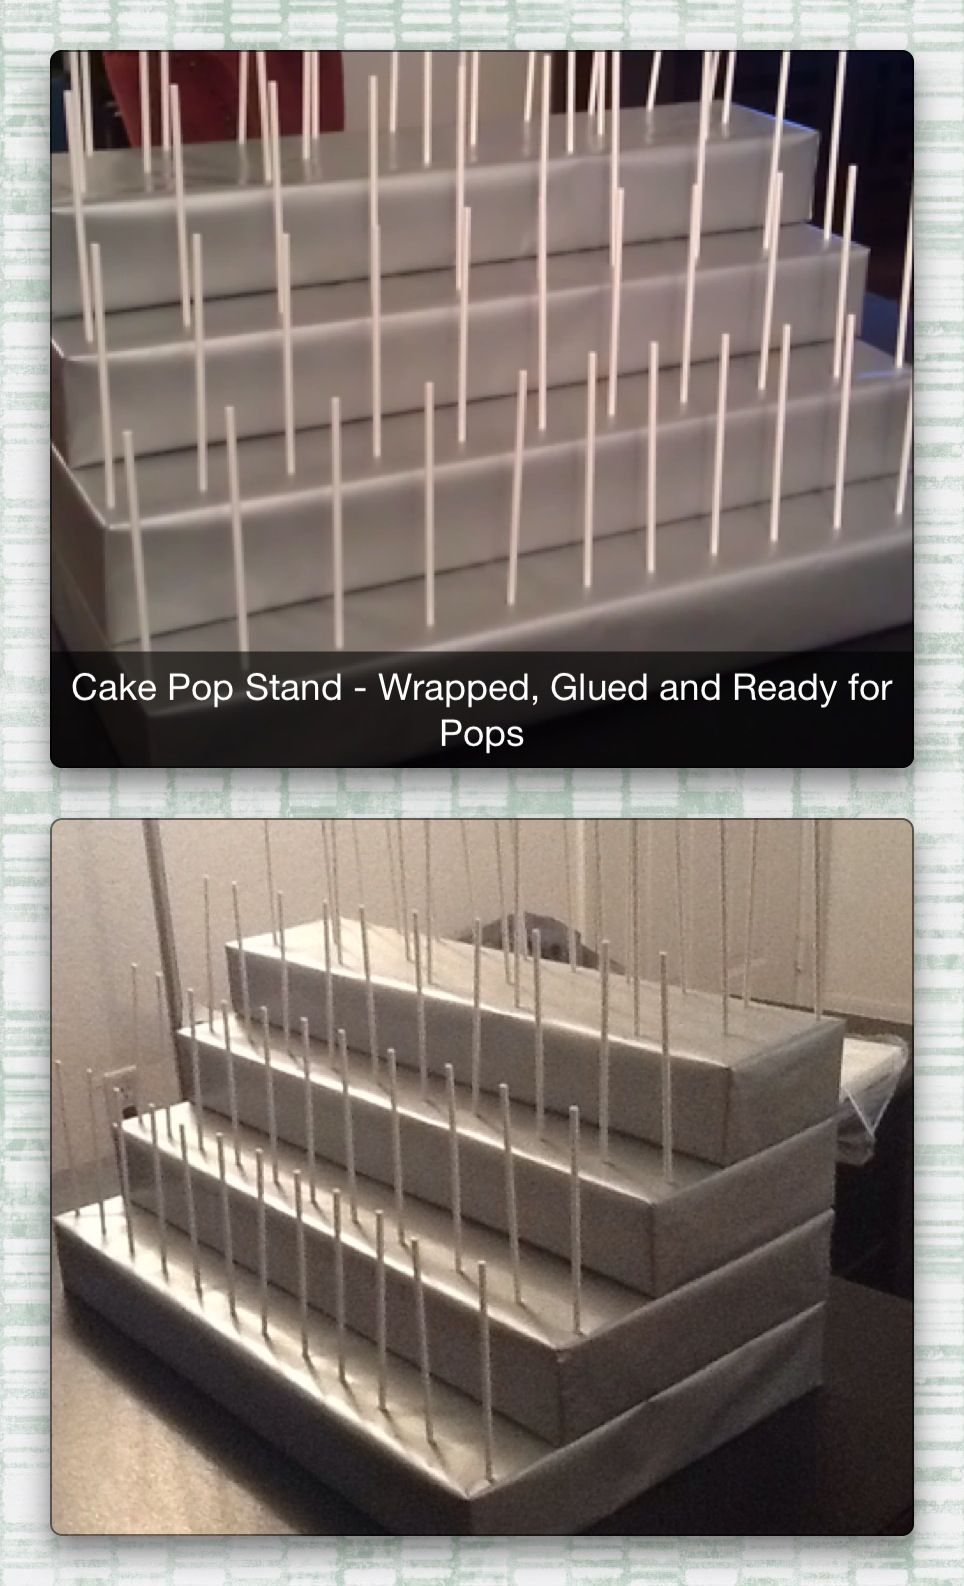 Completed 4 Tiered Cake Pop Stand Cake Pop Chronicles